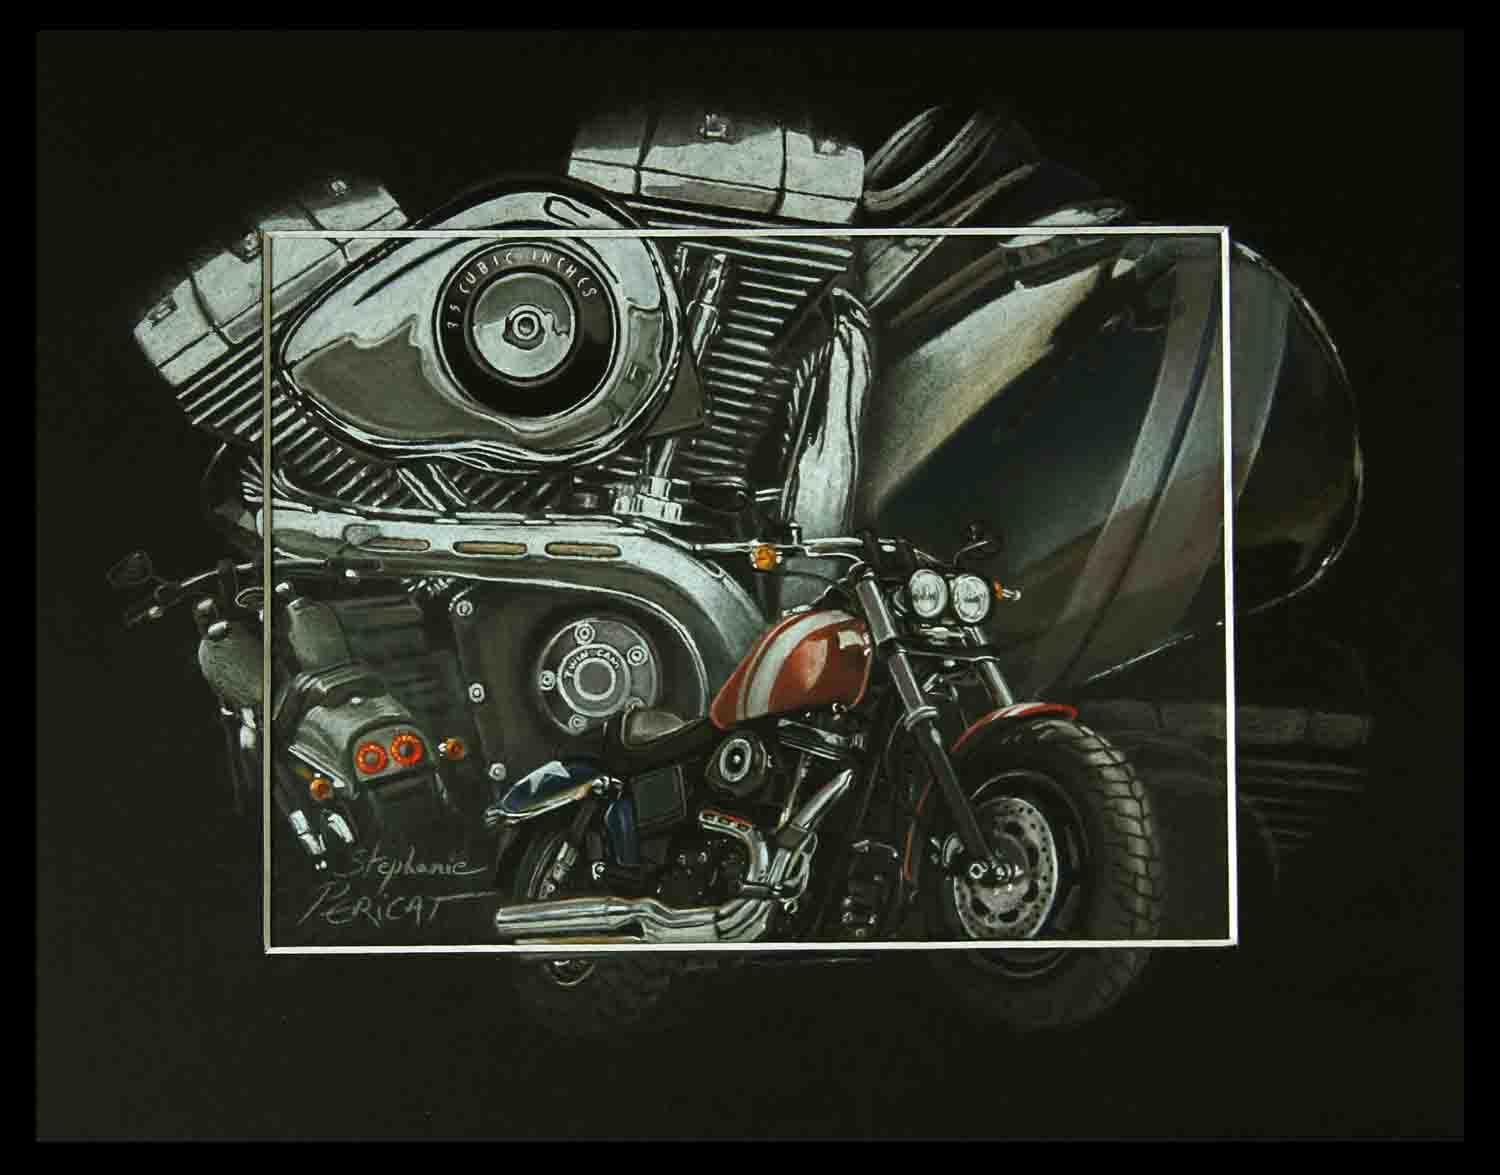 HARLEY DAVIDSON FAT BOB (2008-2015) - pastel sec(soft pastel)- 24x30cm - AV for sale